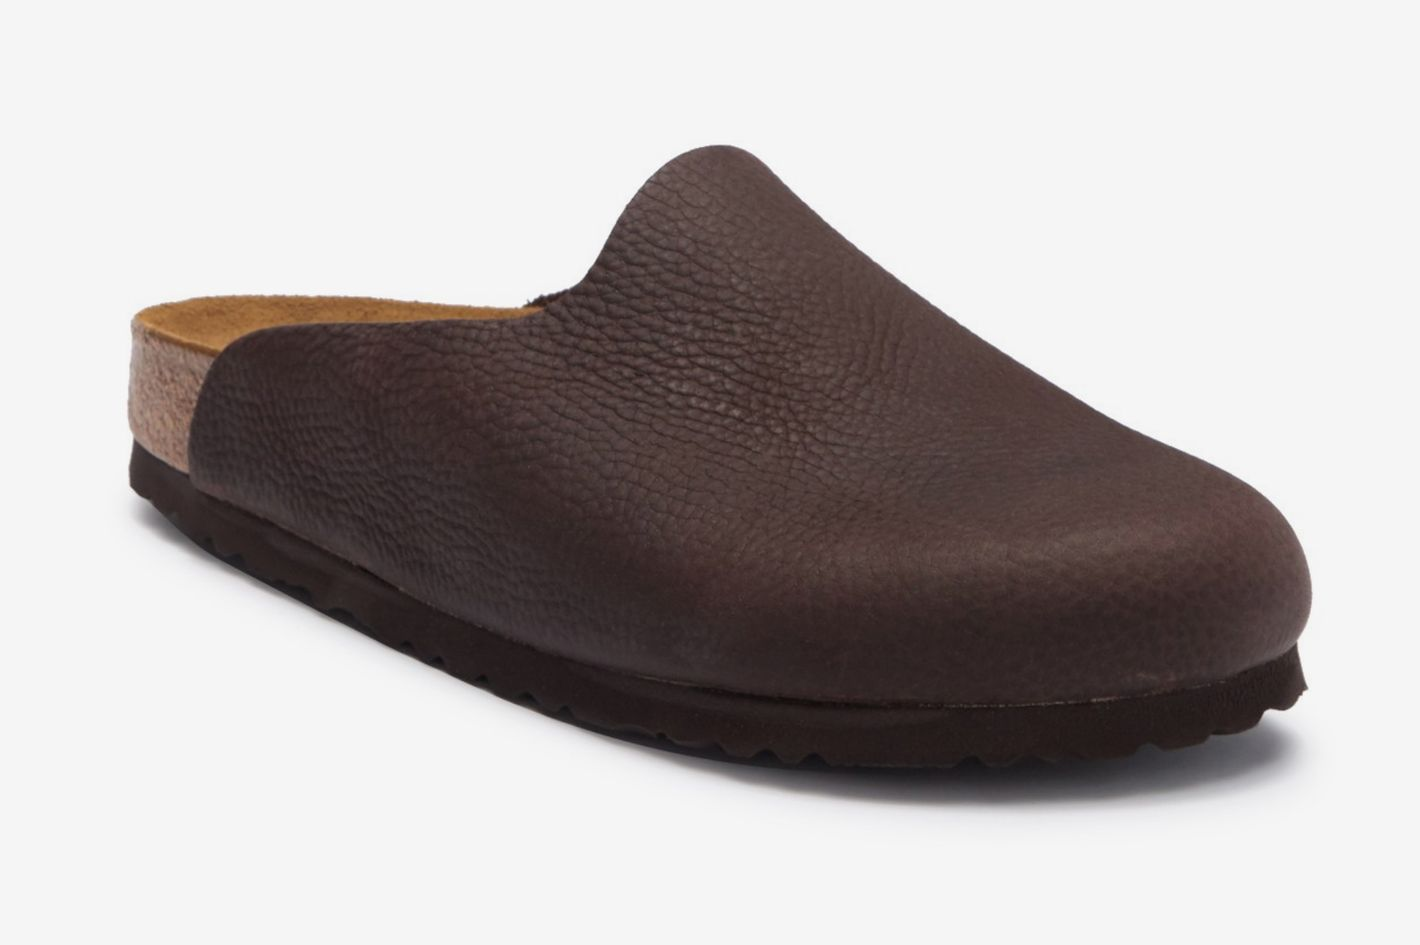 8e05a11062c4 Birkenstock Amsterdam Slip-on Clogs on Sale 2018